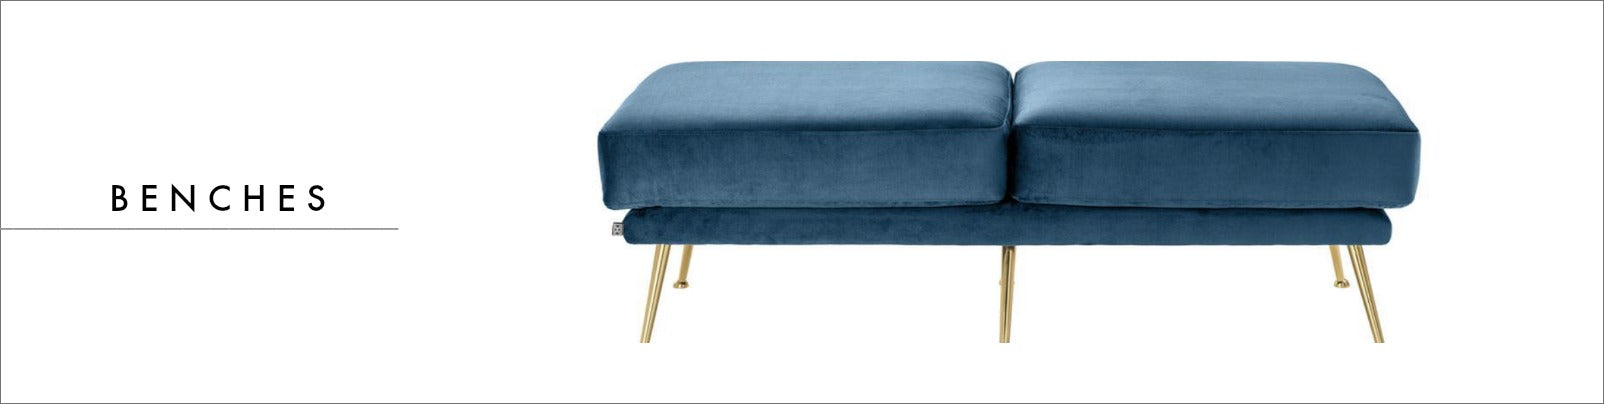 Benches | Eichholtz Living Room Furniture | OROA - Affordable Luxury Furniture Online